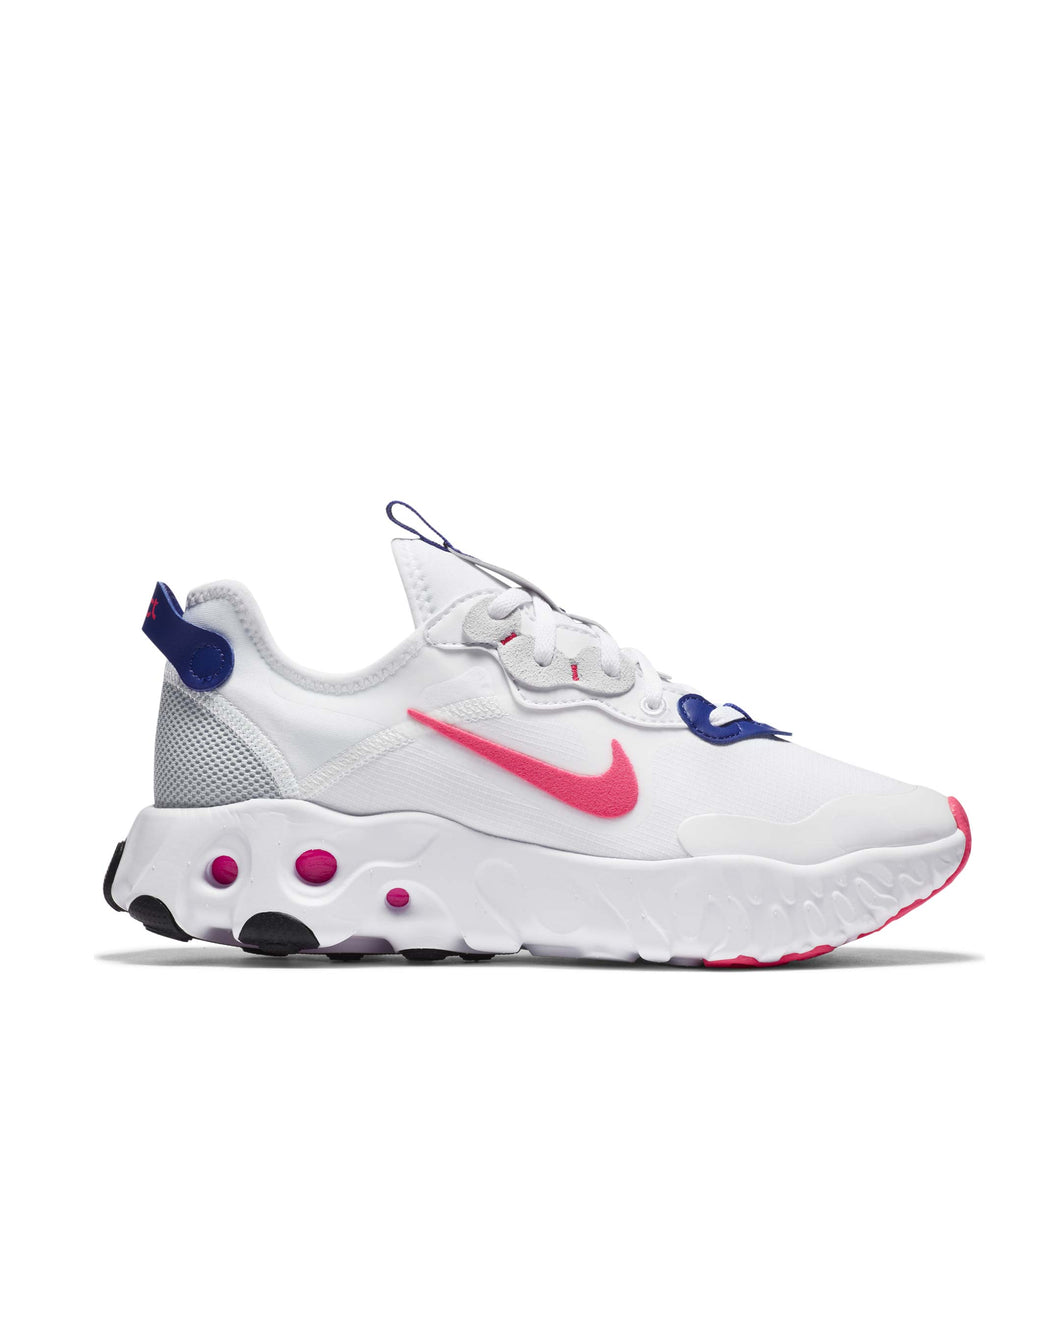 Nike React Art3mis White Hyper Pink Concord Pure Platinum